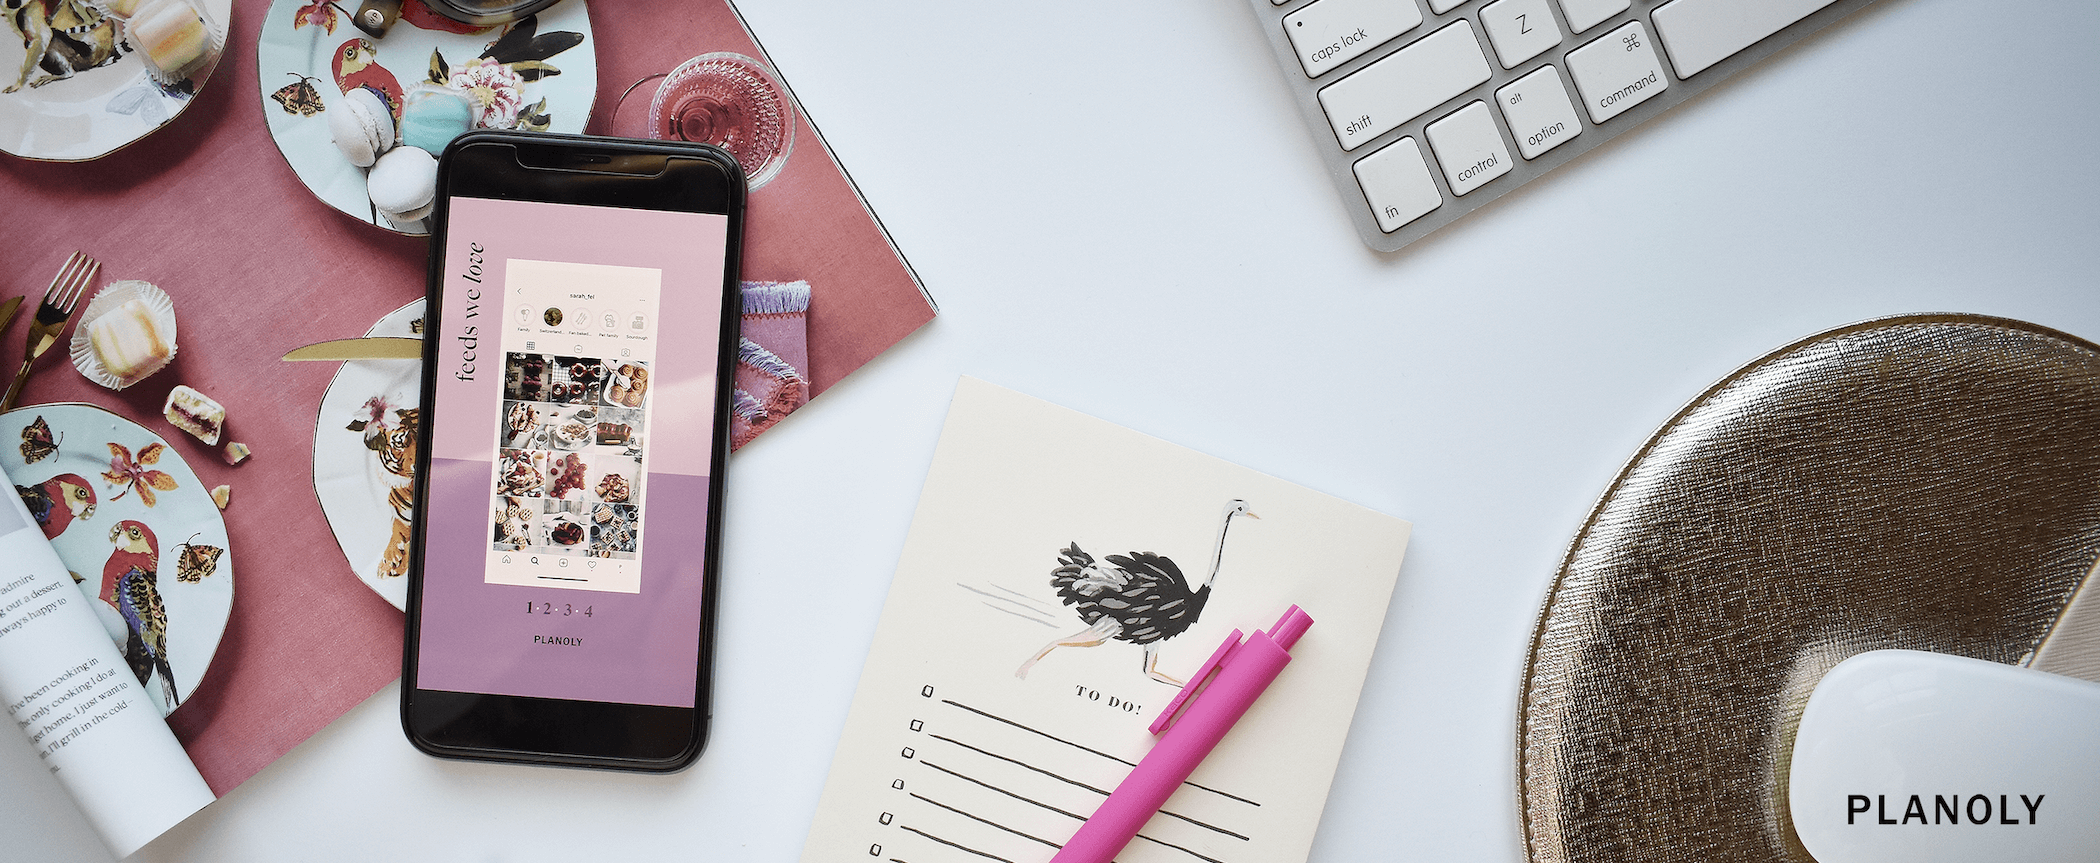 How to Use Instagram Stories to Connect with Your Audience